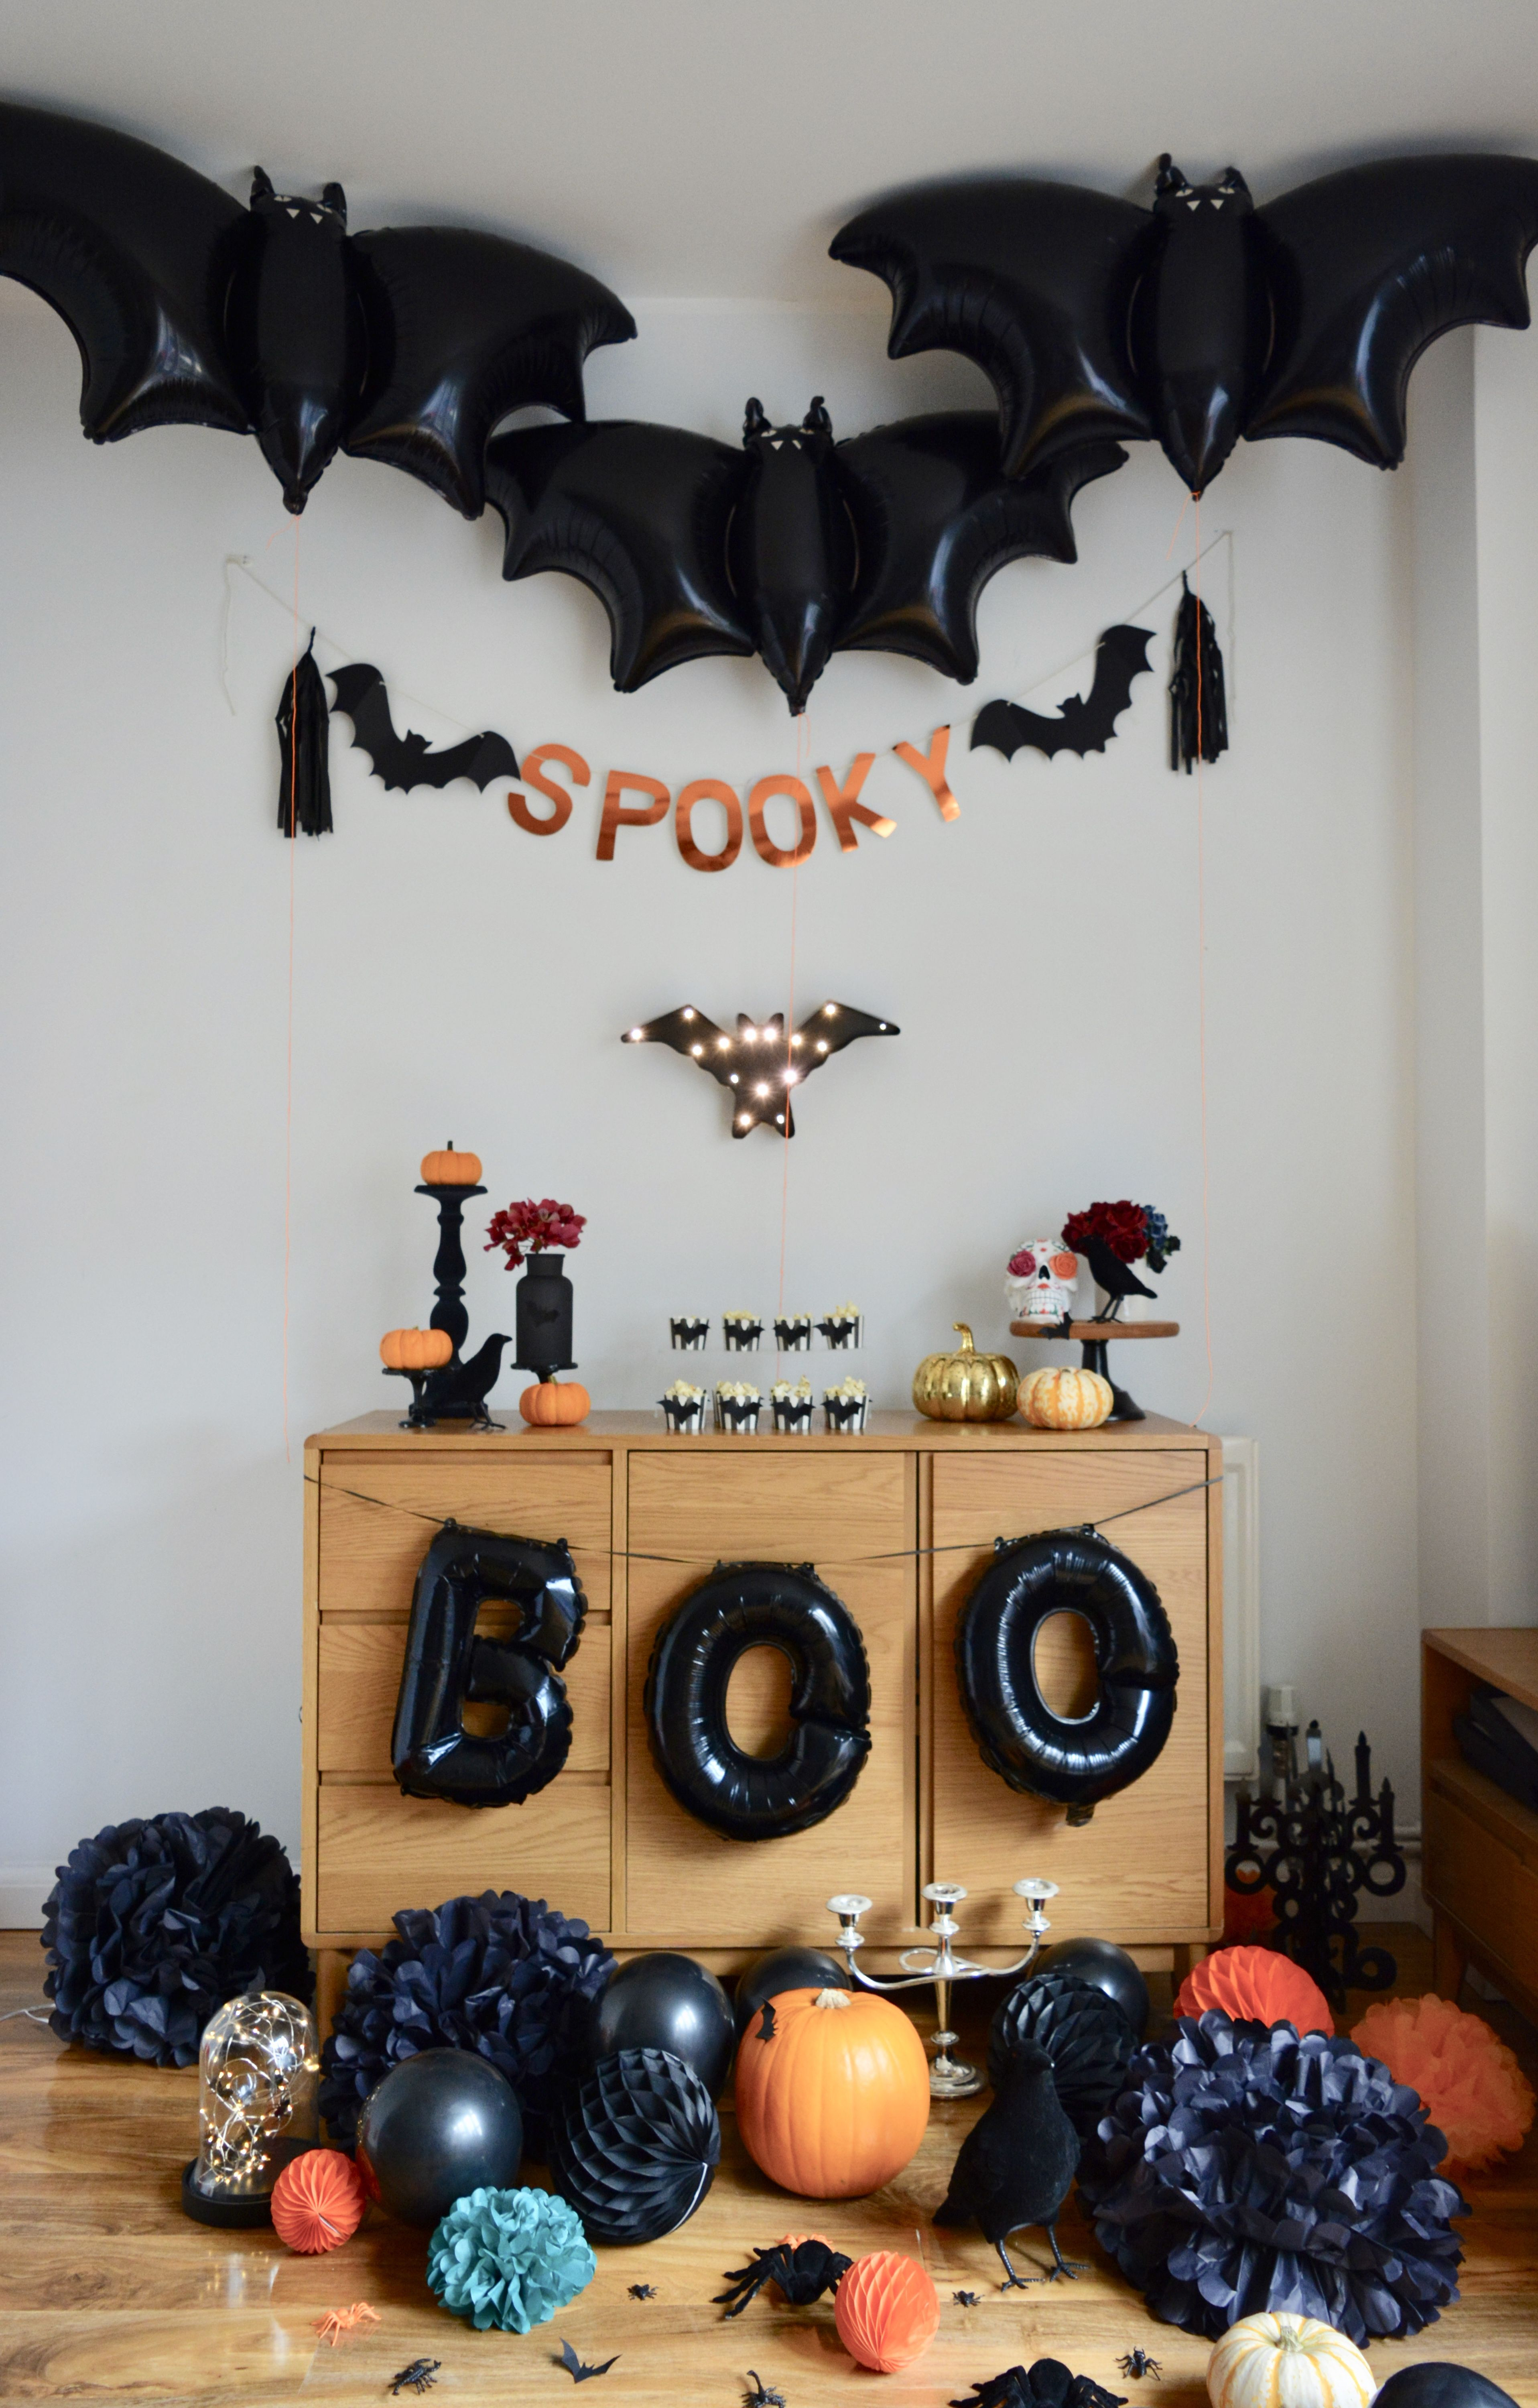 Pin by Maira Laumete on Halloween party decoration Pinterest - cool homemade halloween decorations